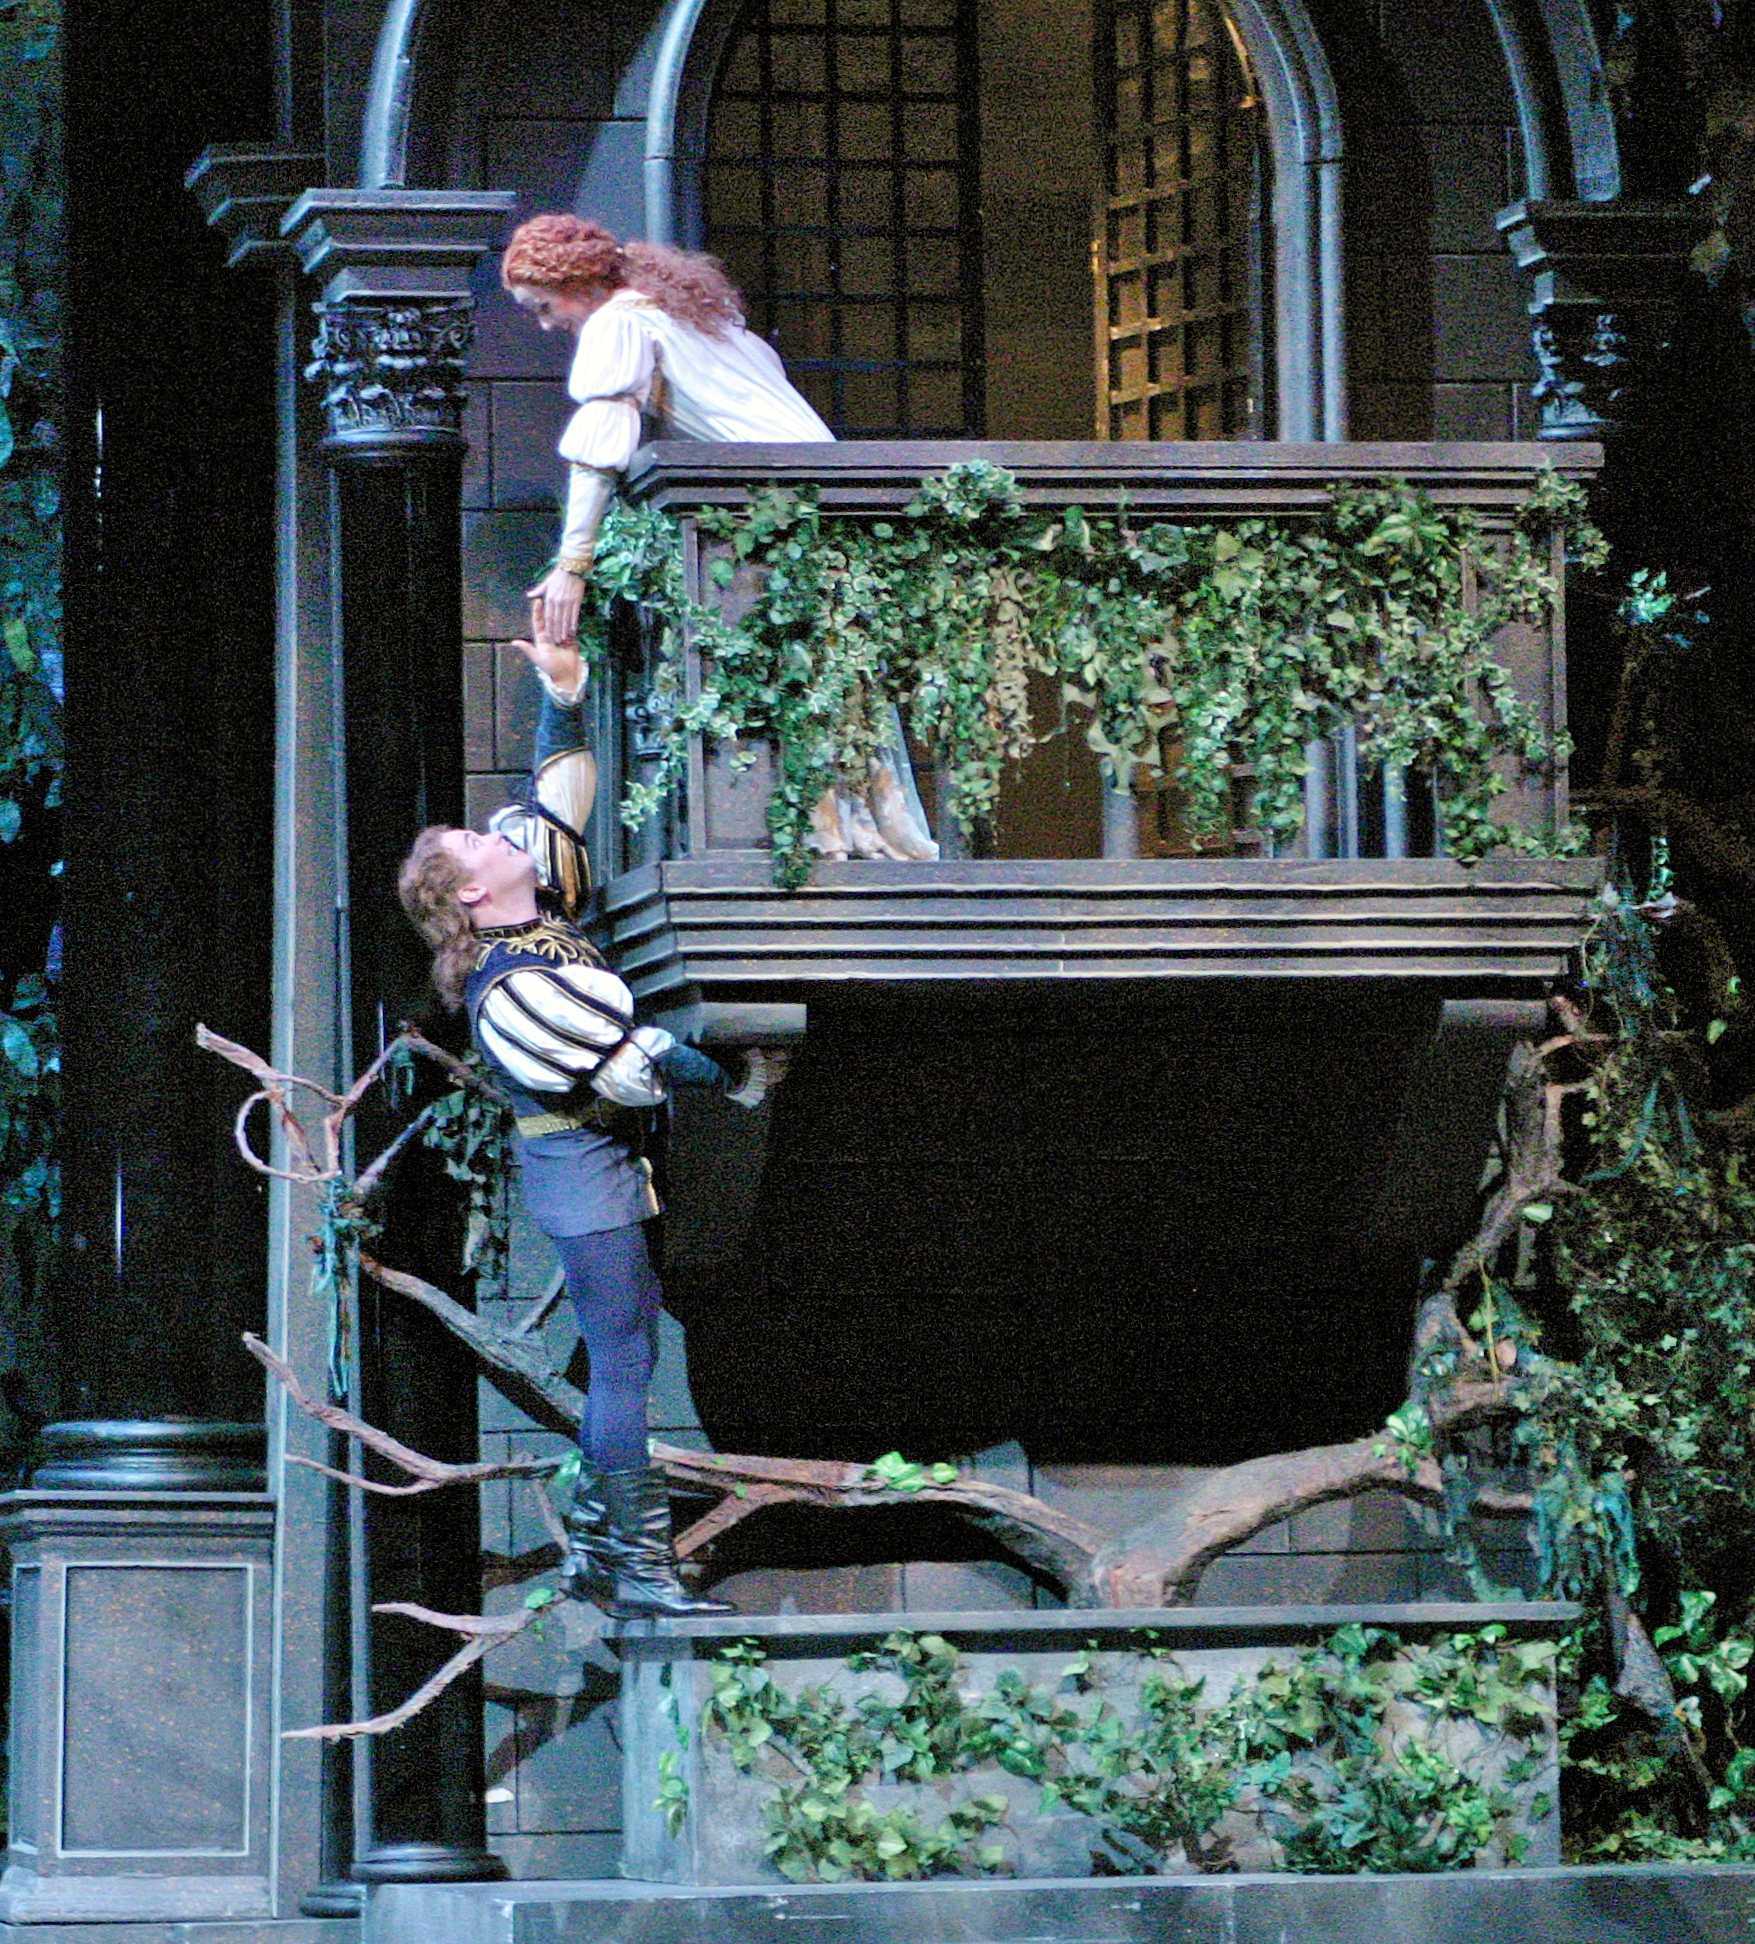 essay on the balcony scene in romeo and juliet An essay or paper on the first balcony scene of romeo and juliet romeo and juliet: the first balcony scene the first balcony scene in romeo and juliet is one of the.